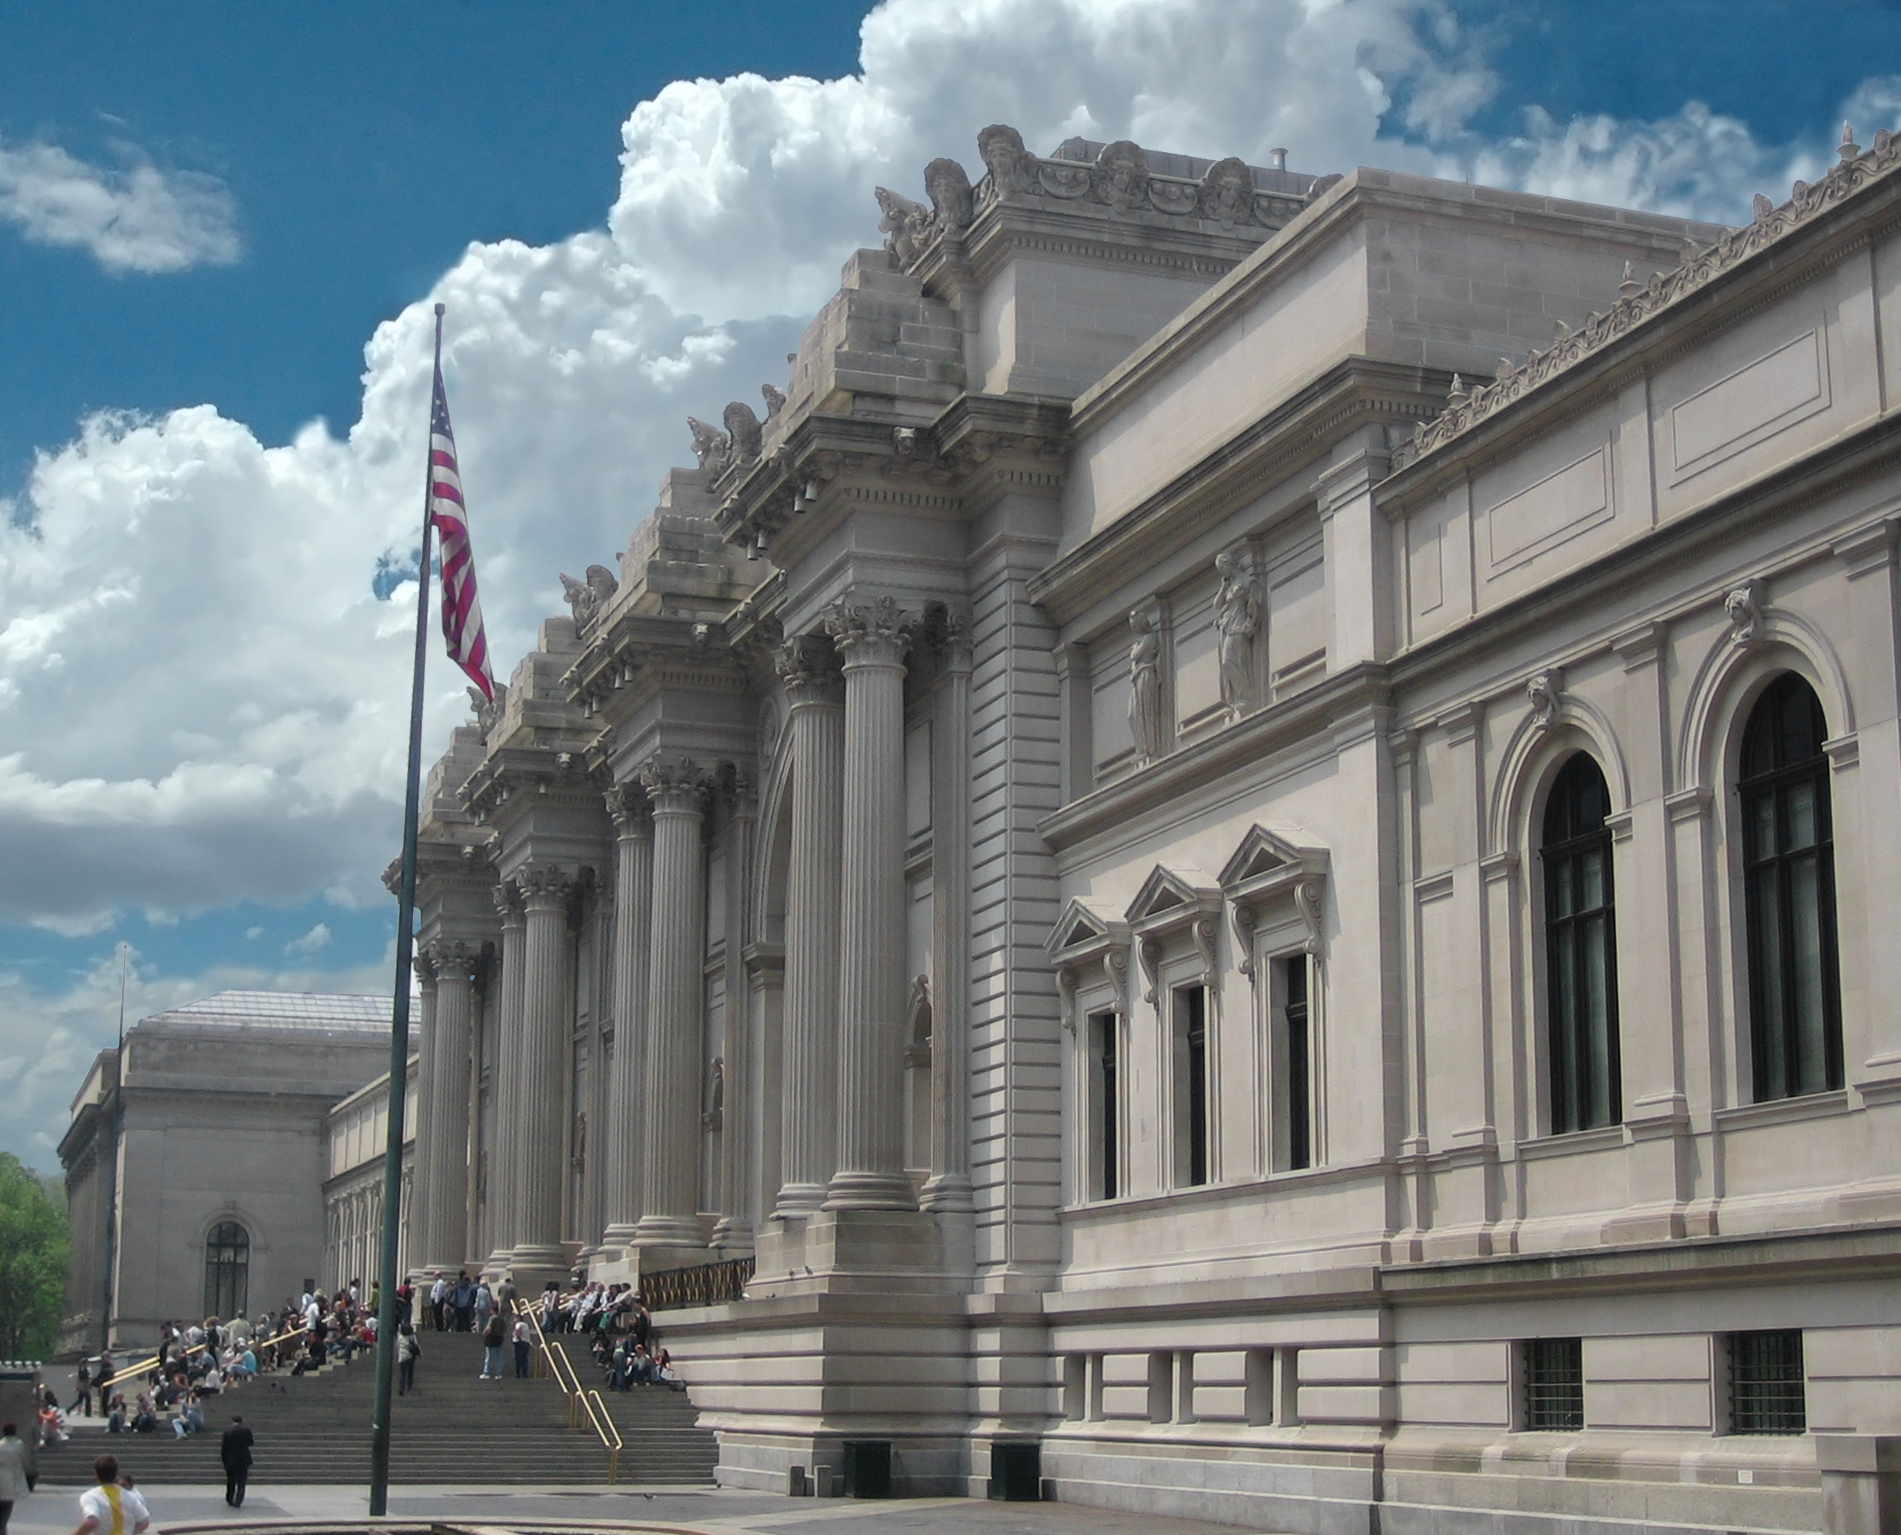 Metropolitan_Museum_of_Art_entrance_NYC